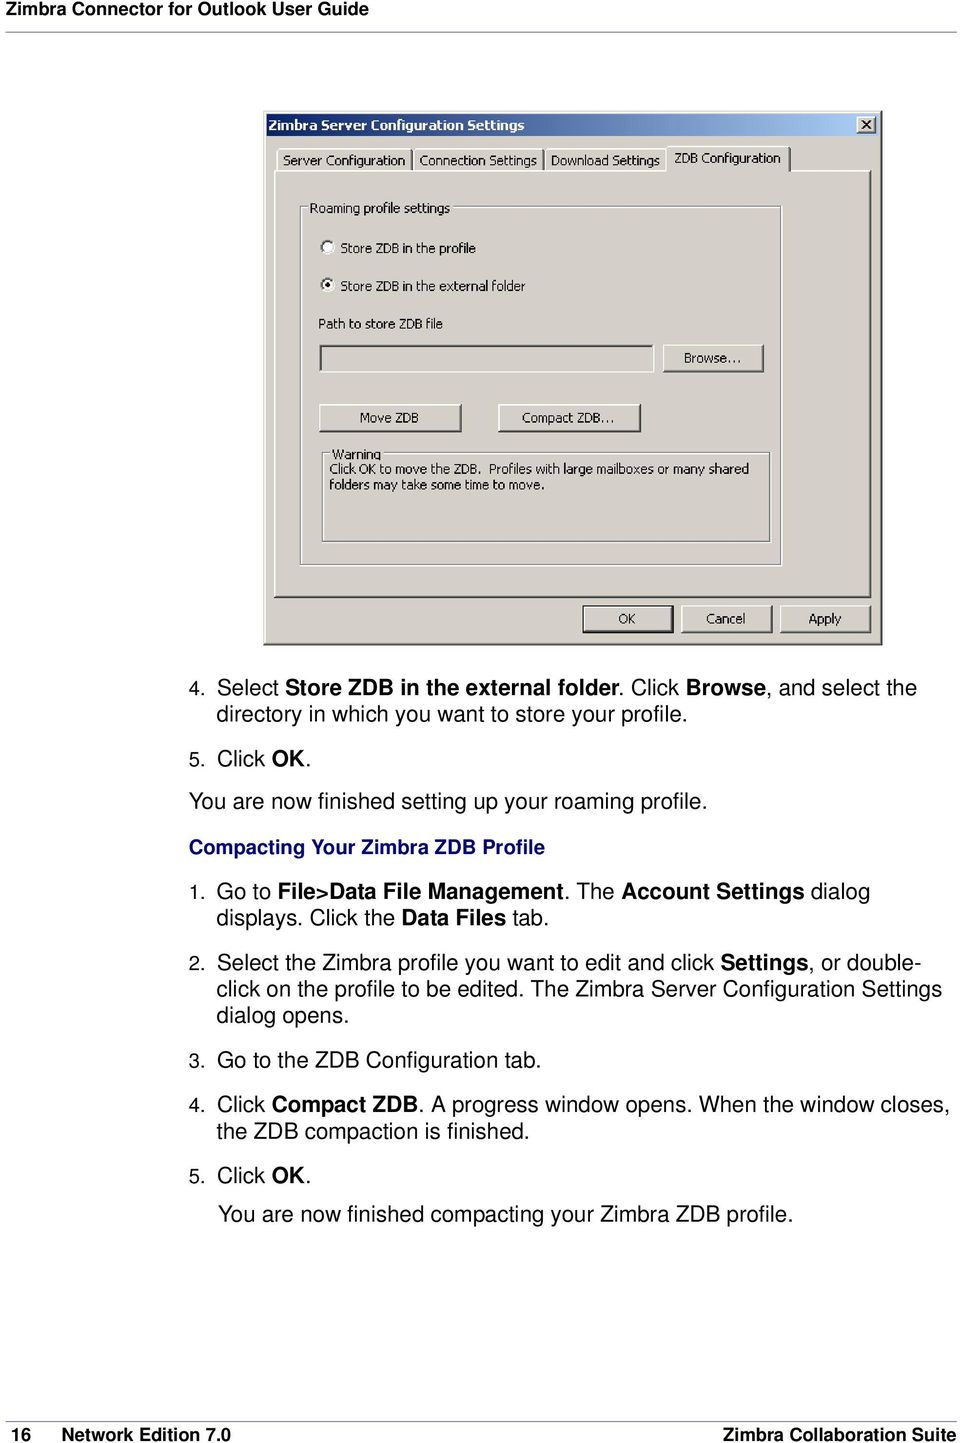 2. Select the Zimbra profile you want to edit and click Settings, or doubleclick on the profile to be edited. The Zimbra Server Configuration Settings dialog opens. 3.